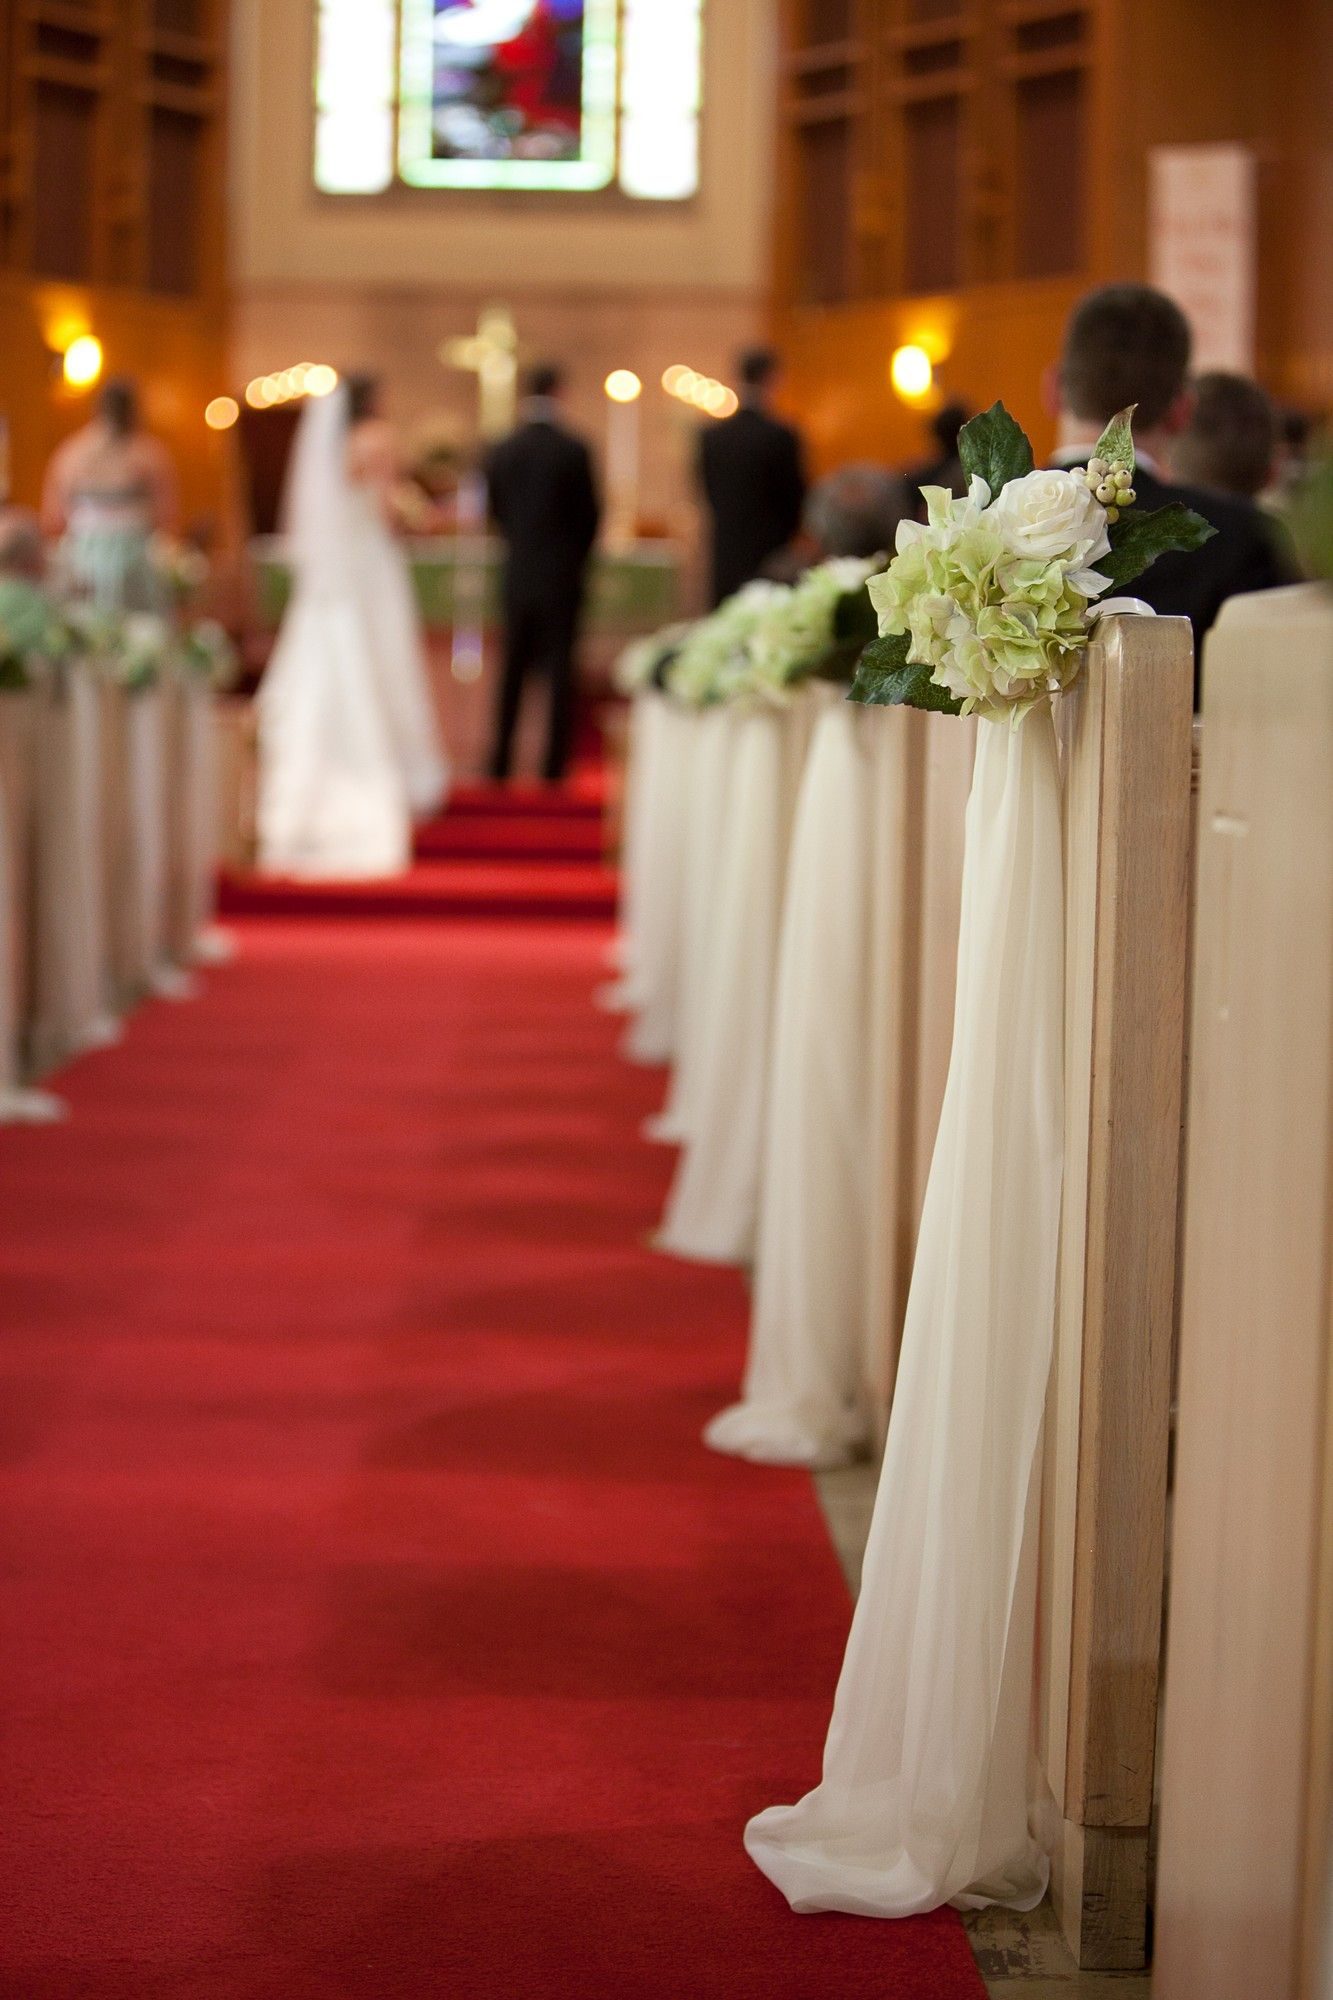 Diy pew bows wedding flowers pinterest for Aisle wedding decoration ideas